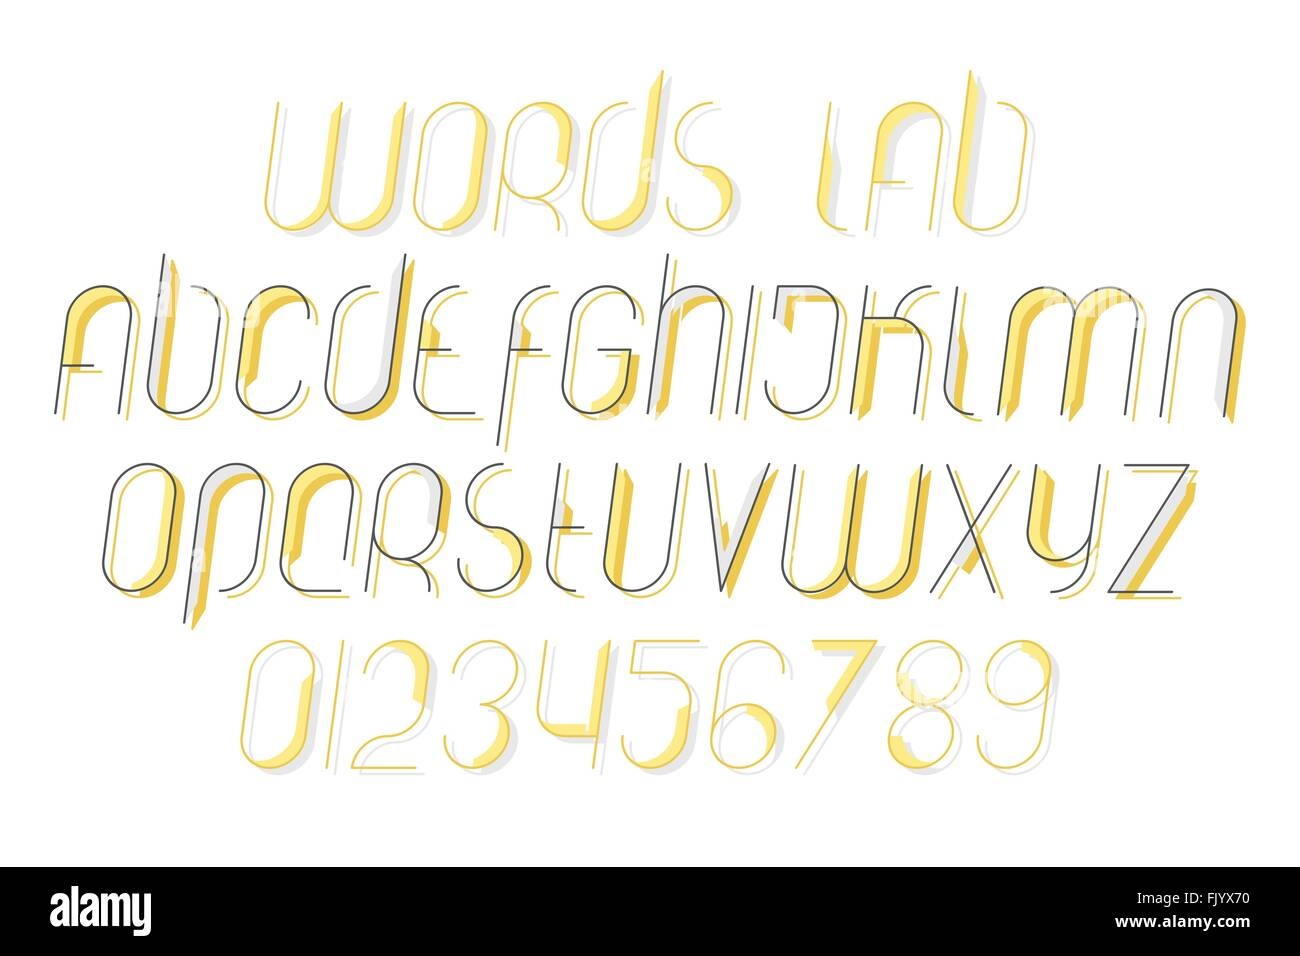 2019 year for women- Text stylish alphabets